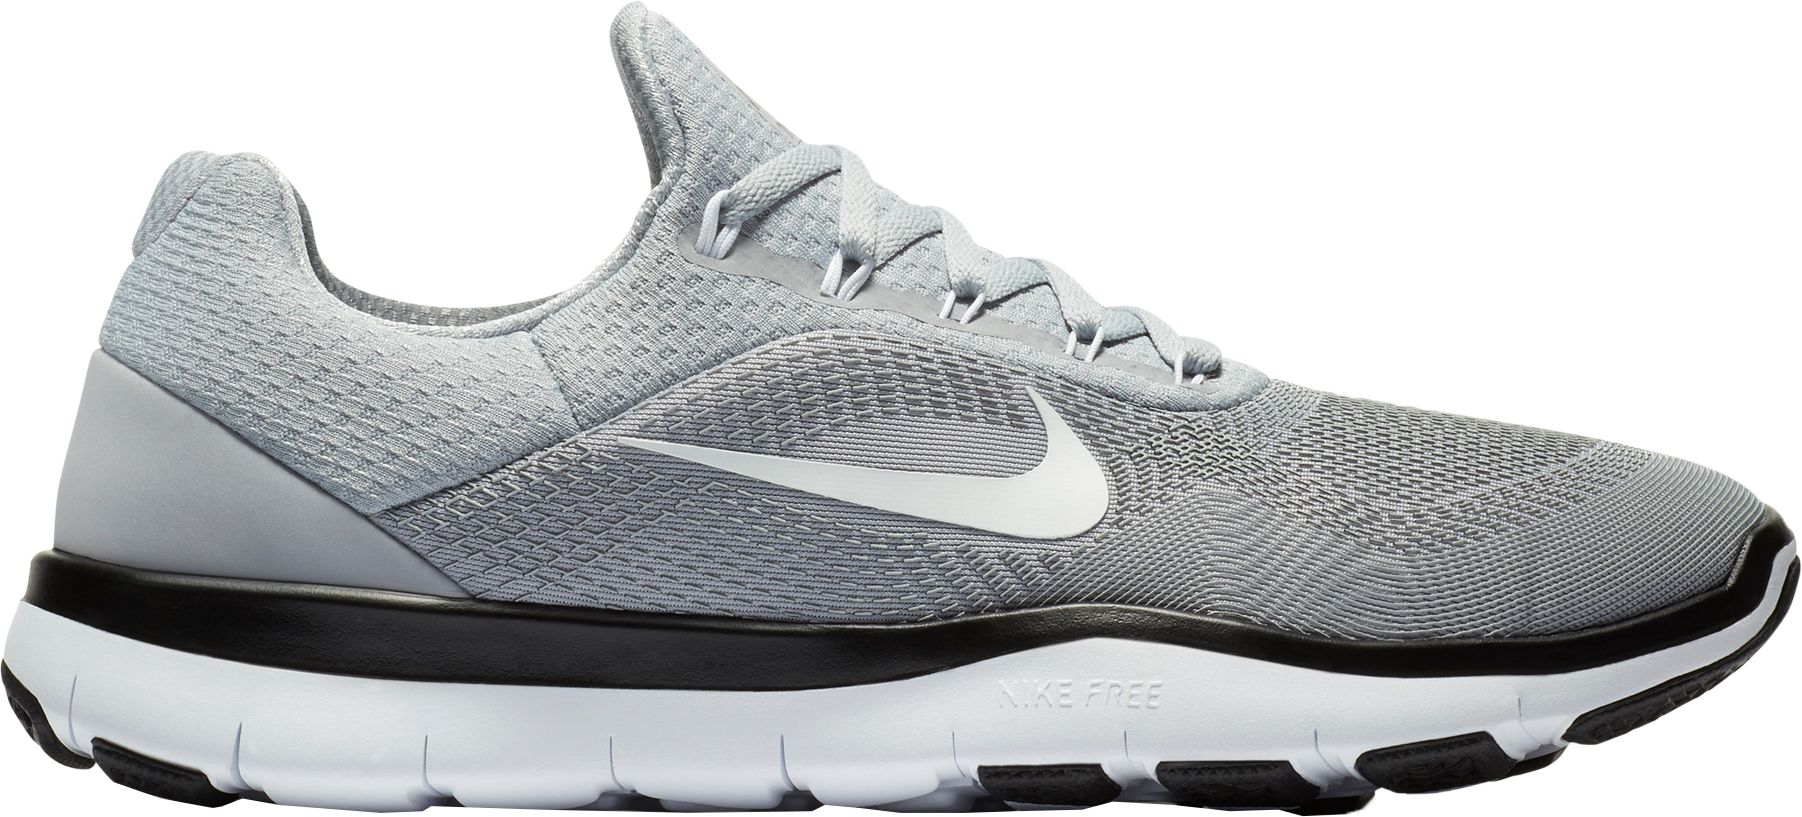 on sale 9636c fdf5c Nike Free Trainer V7 : Nike | Discounted Shoes & Trainers | Neviral.com